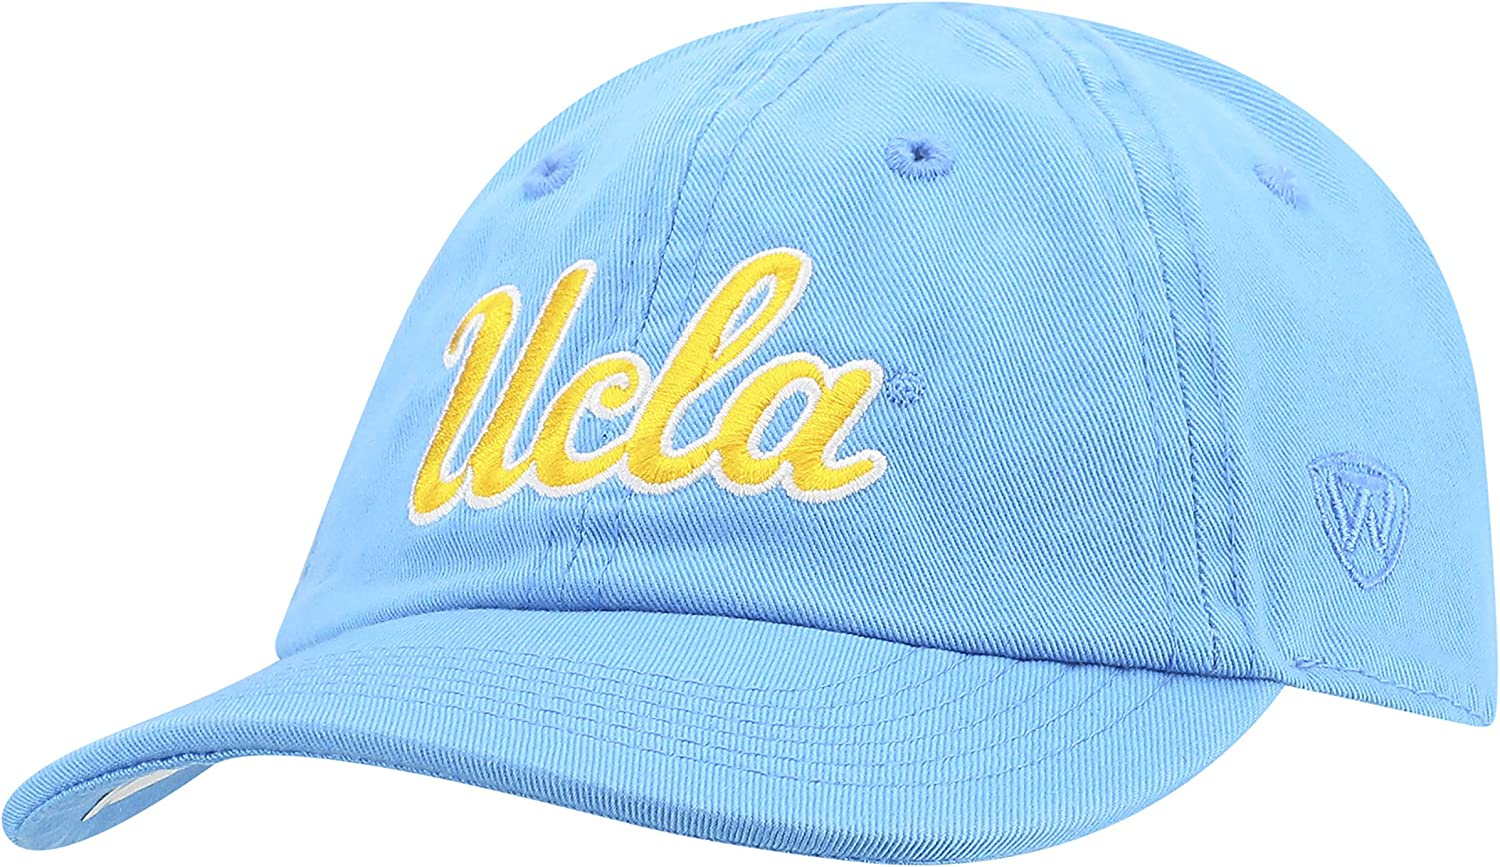 NCAA UCLA Bruins Infant Toddler Relaxed Fit Hat, UCLA Bruins Royal, Adjustable